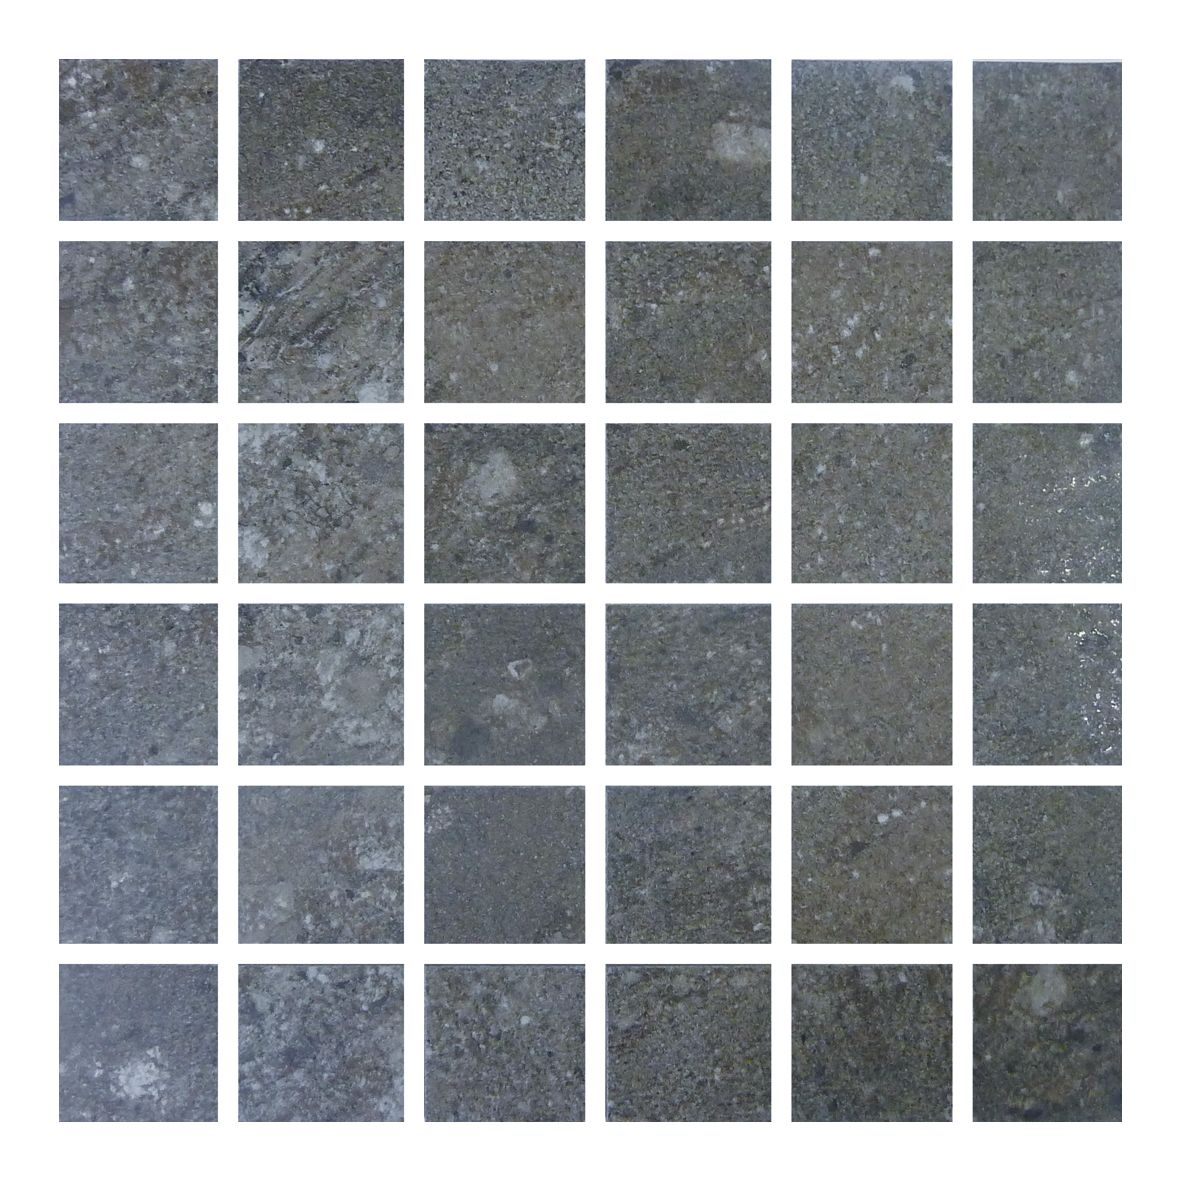 gemini hillock dark grey mosaic bathroom, kitchen, wetroom, living